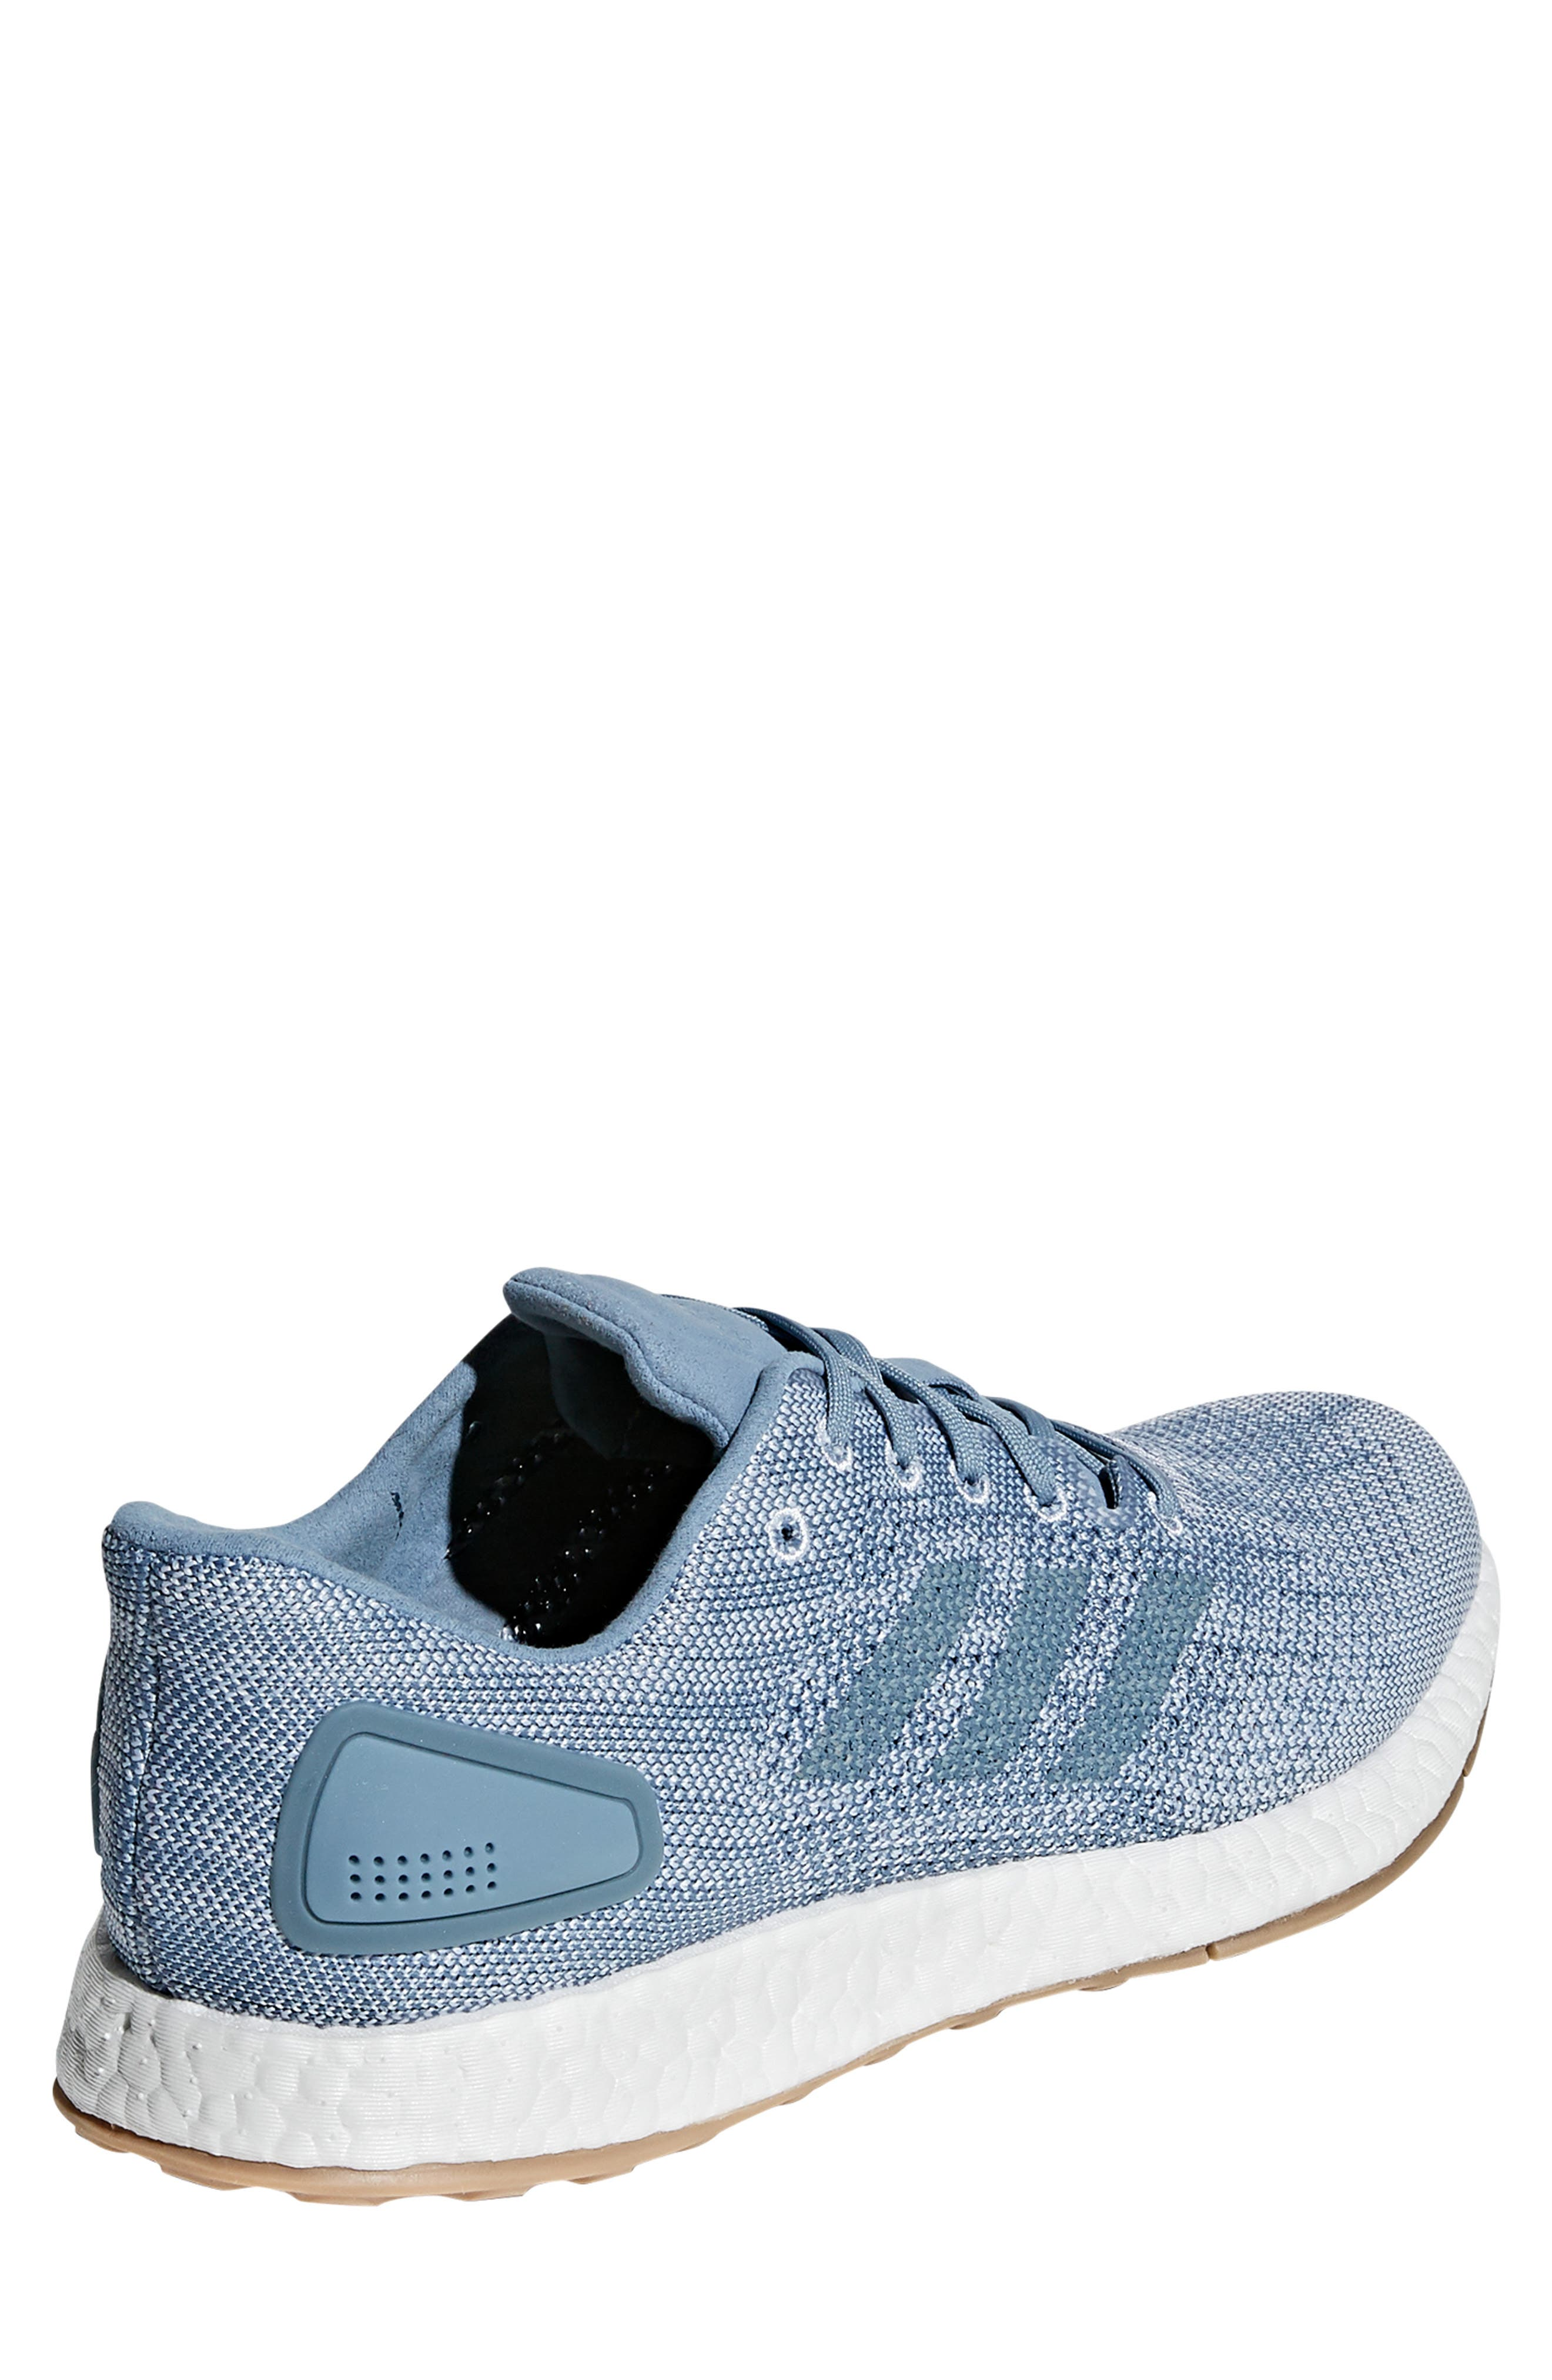 PureBoost DPR Running Shoe,                             Alternate thumbnail 2, color,                             360